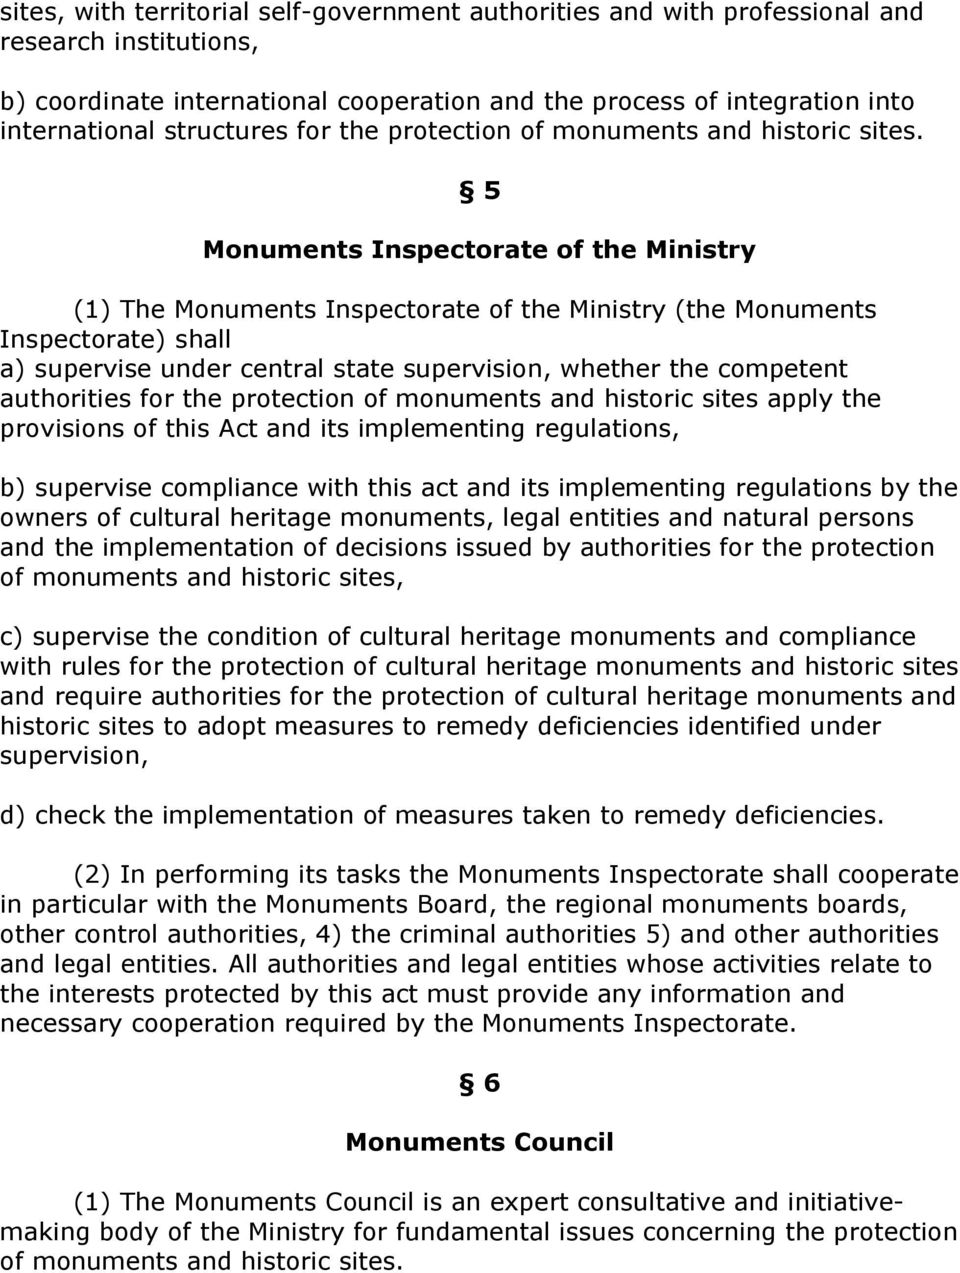 5 Monuments Inspectorate of the Ministry (1) The Monuments Inspectorate of the Ministry (the Monuments Inspectorate) shall a) supervise under central state supervision, whether the competent